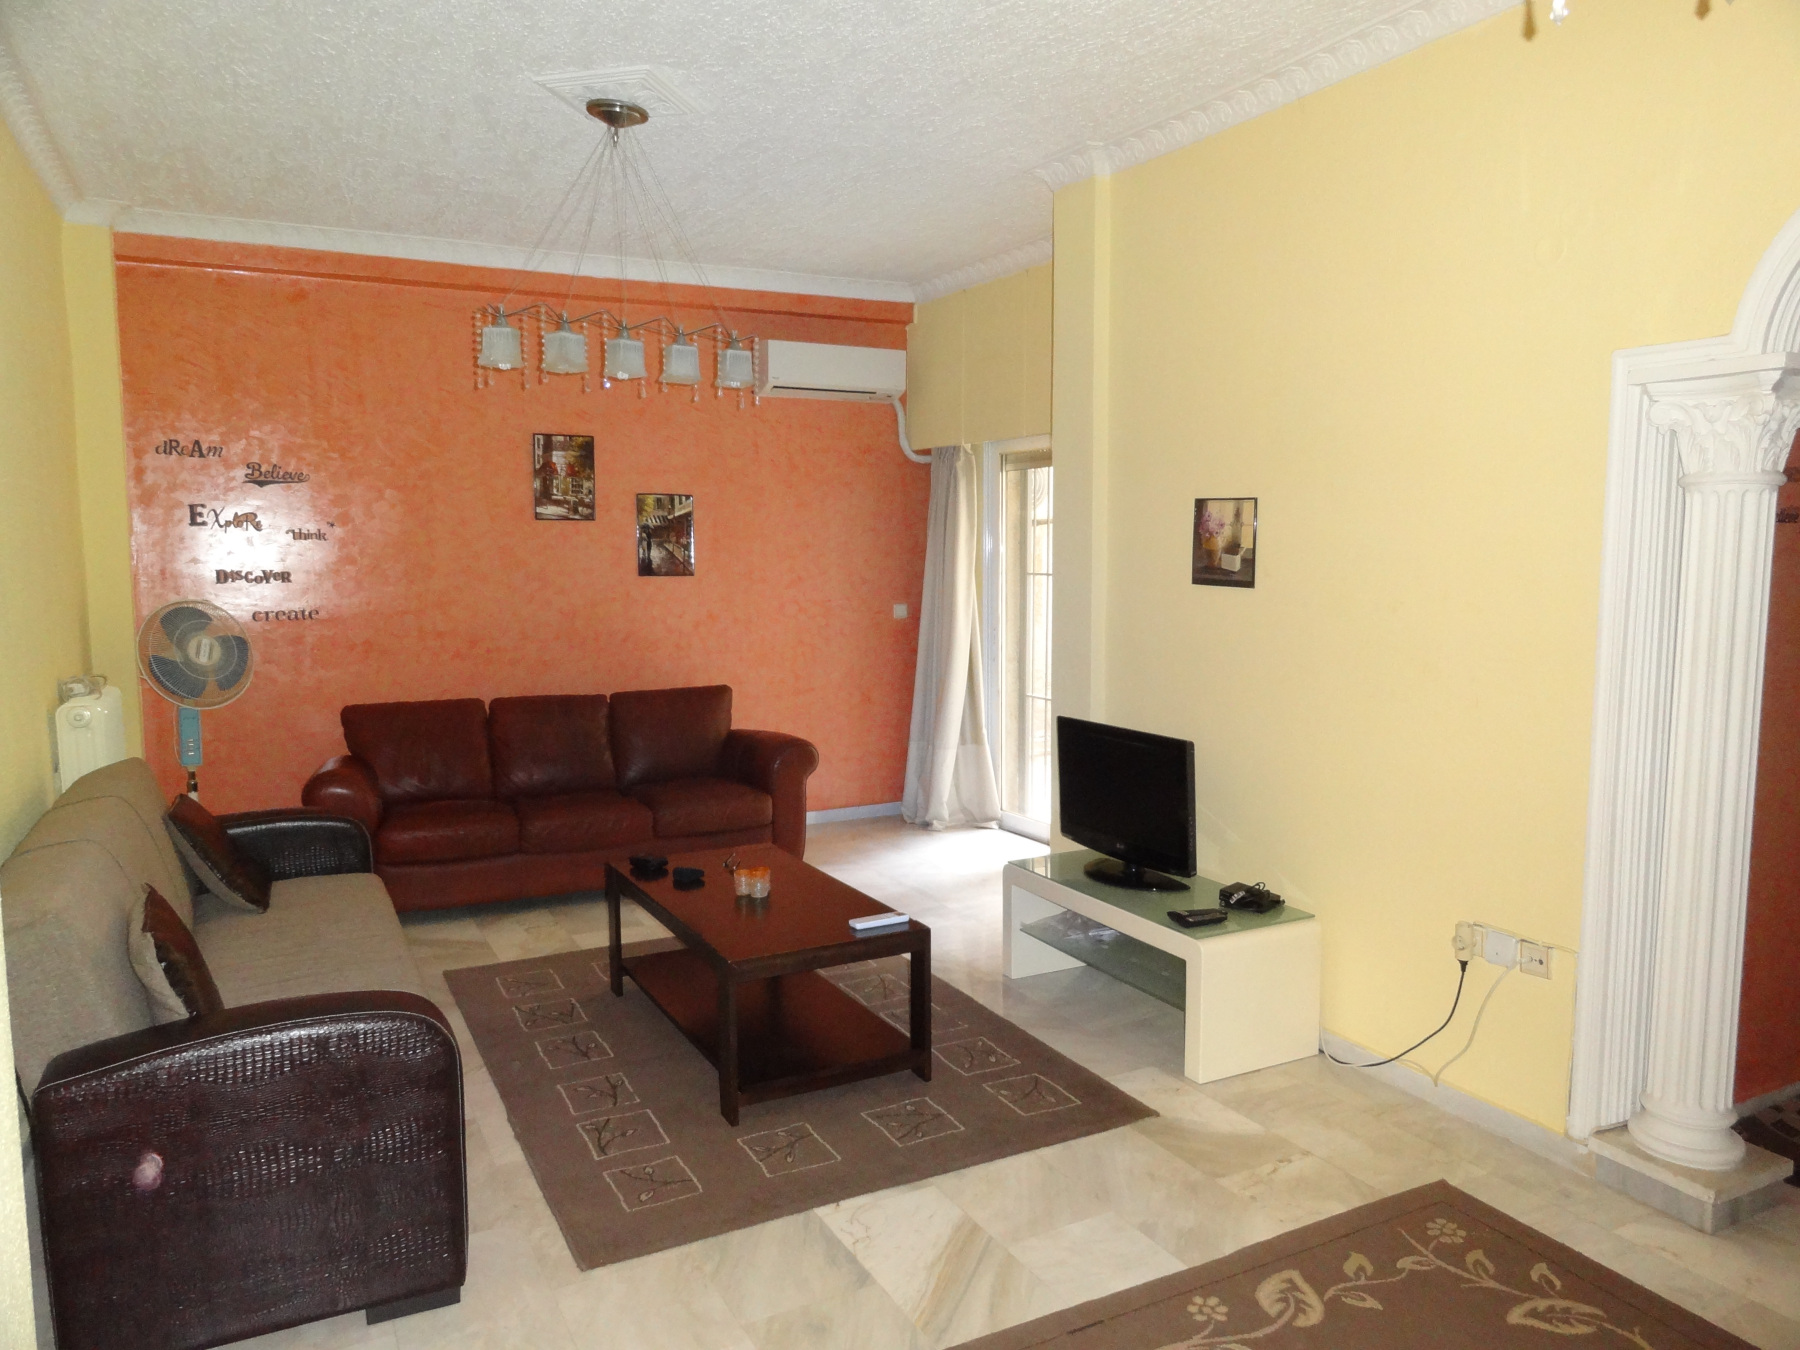 For rent 2 bedrooms fully furnished apartment of 92 sq.m. 1st floor in the center of Ioannina.